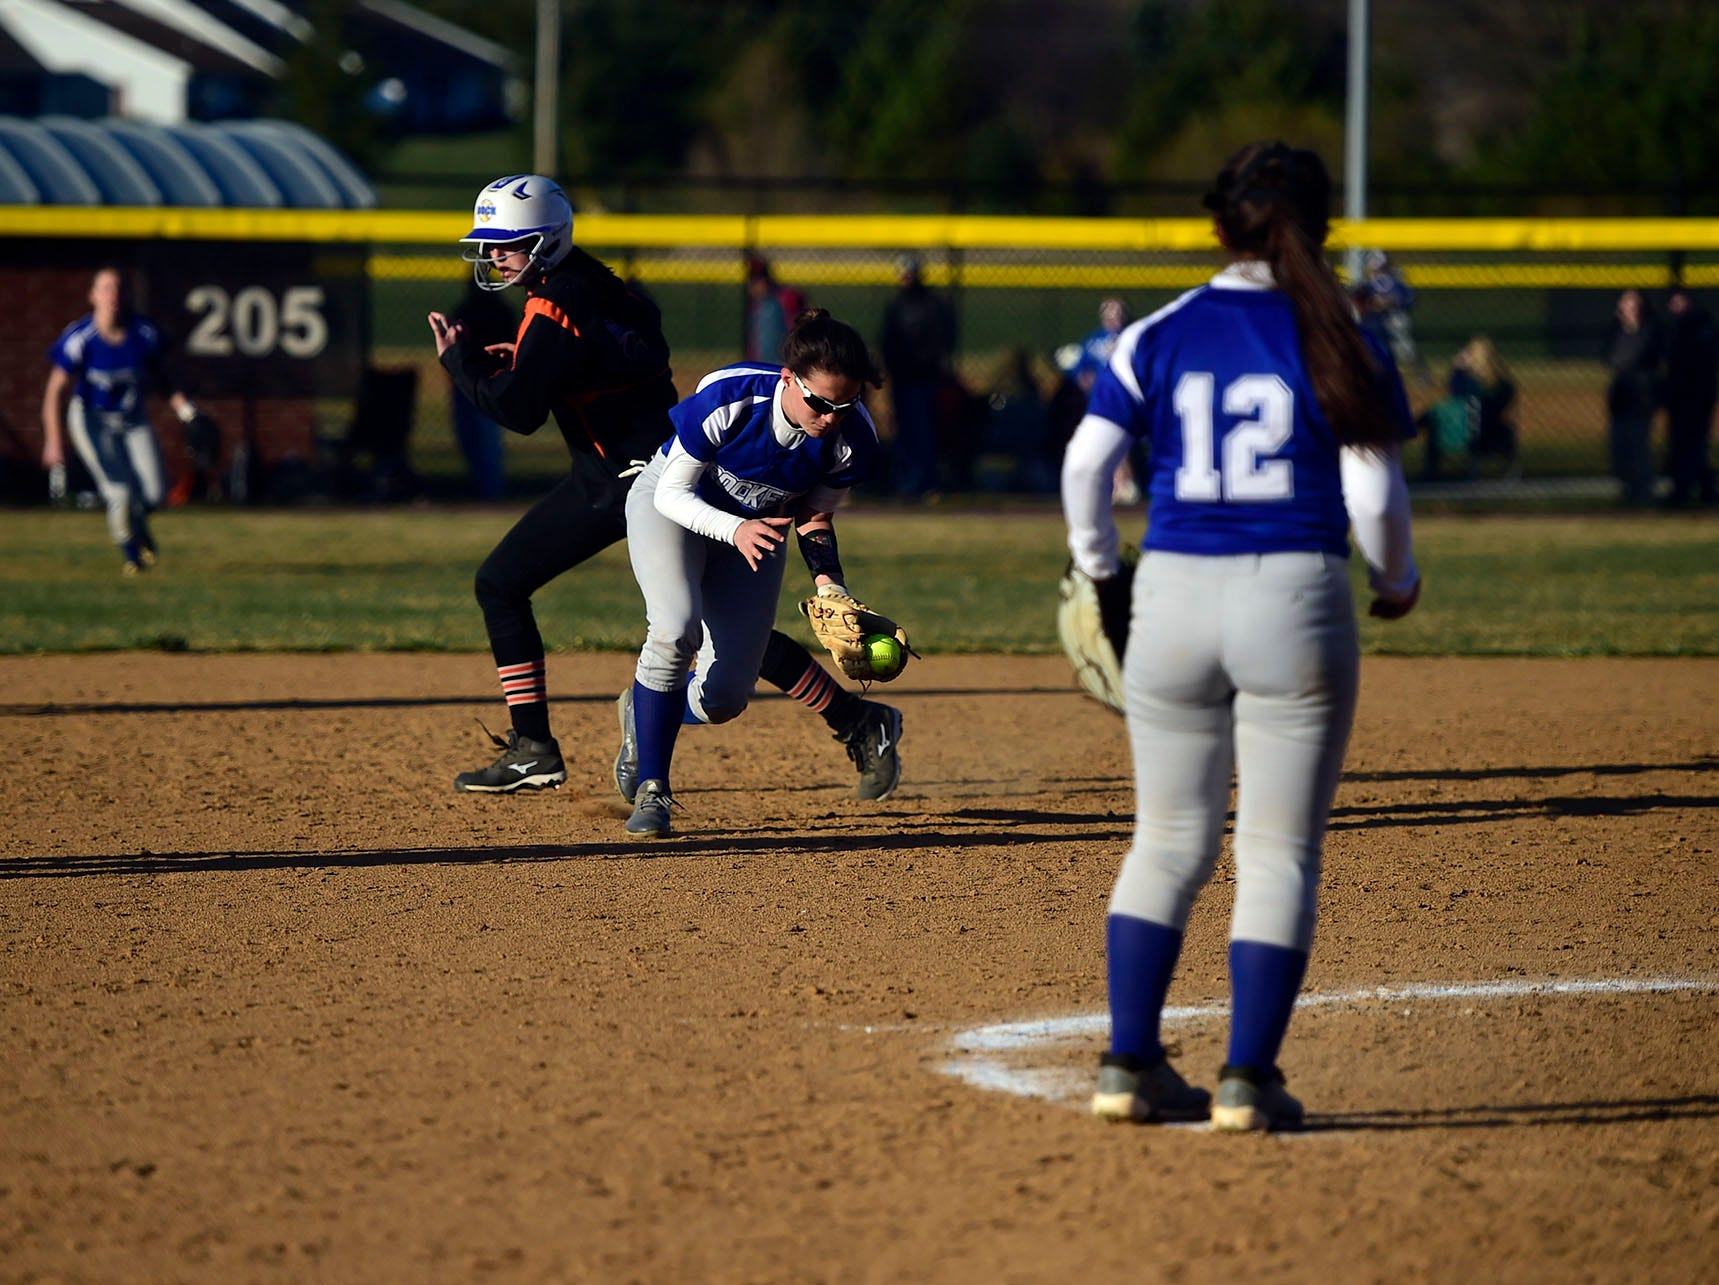 Spring Grove shortstop Kristen Moore scoops up a ground ball in front of a baserunner advancing from second to third base. Moore went 2-for-4 with two runs scored and two RBIs in Spring Grove's 19-14 victory Wednesday, April 3, 2019.